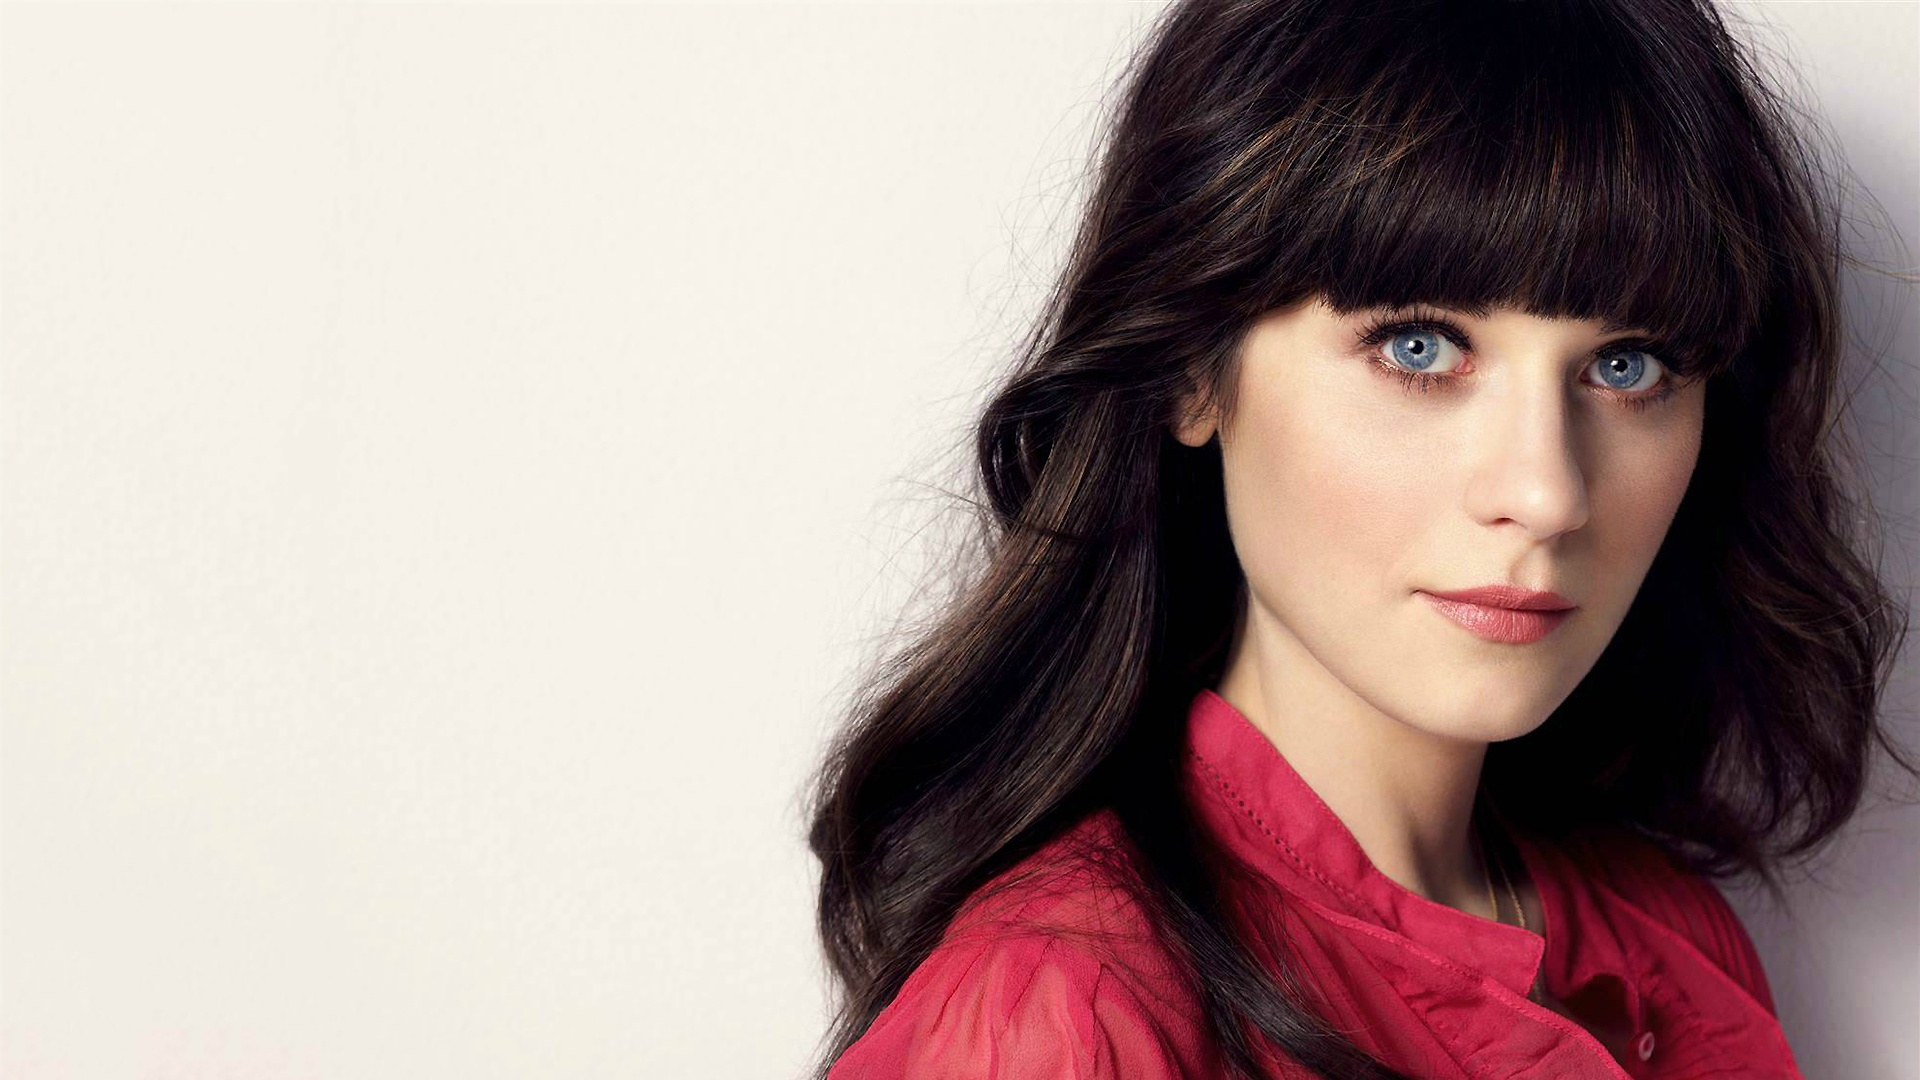 zooey deschanel 2016zooey deschanel hello, zooey deschanel hello скачать, zooey deschanel 2017, zooey deschanel 2016, zooey deschanel sherlock, zooey deschanel gif, zooey deschanel sugar town, zooey deschanel katy perry, zooey deschanel hello перевод, zooey deschanel vk, zooey deschanel sugar town перевод, zooey deschanel and joseph gordon-levitt, zooey deschanel википедия, zooey deschanel фото, zooey deschanel фильмография, zooey deschanel hello минус, zooey deschanel wiki, zooey deschanel dance, zooey deschanel ukulele, zooey deschanel yes man перевод